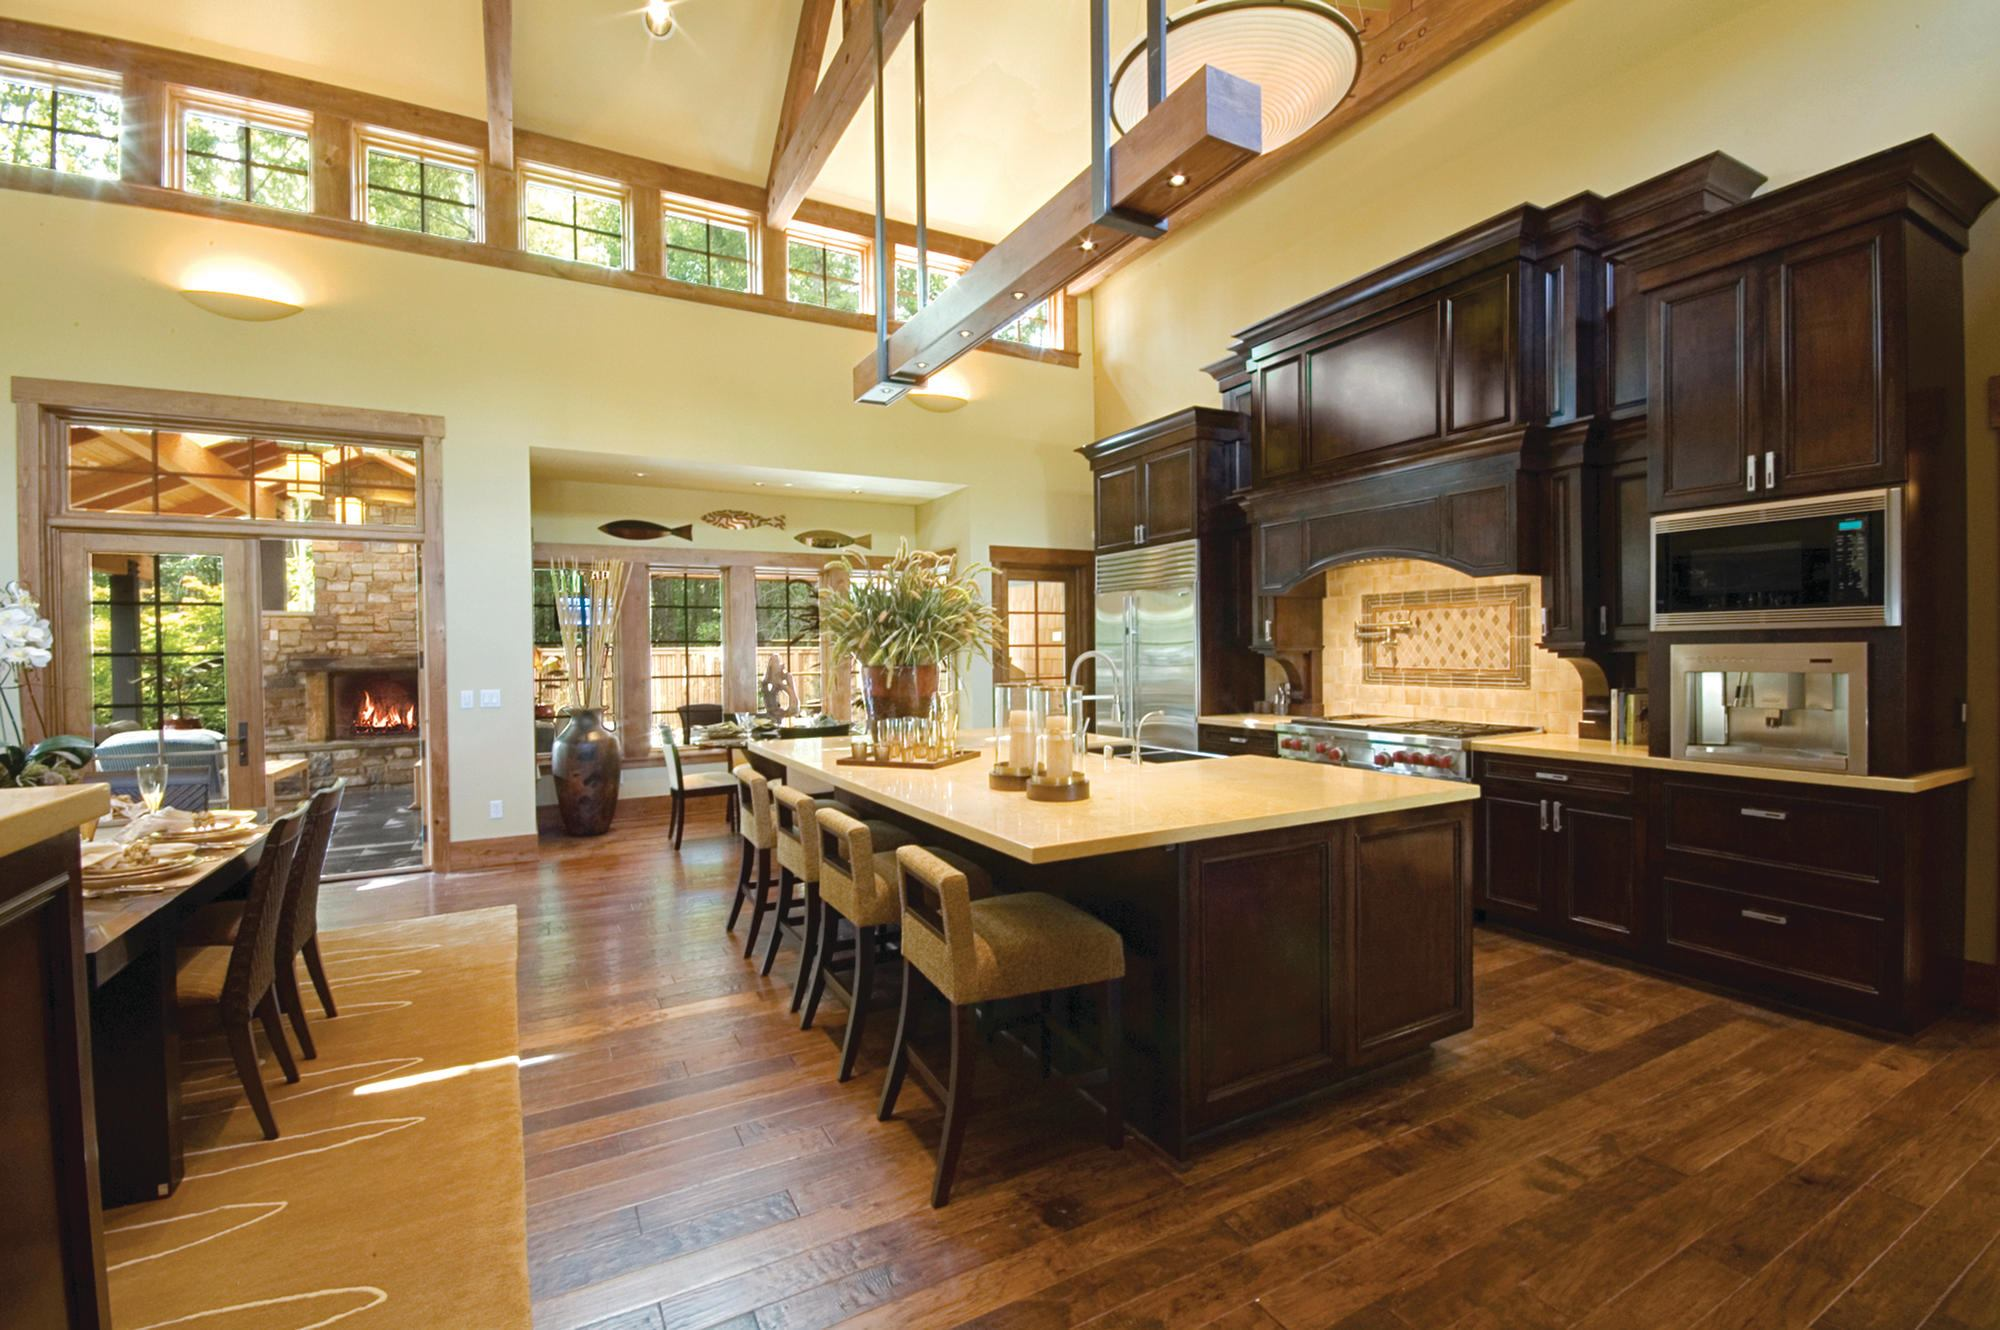 FSC Certified Cabinetry From Crystal Cabinet Works EcoBuilding Pulse Magazine Green Products